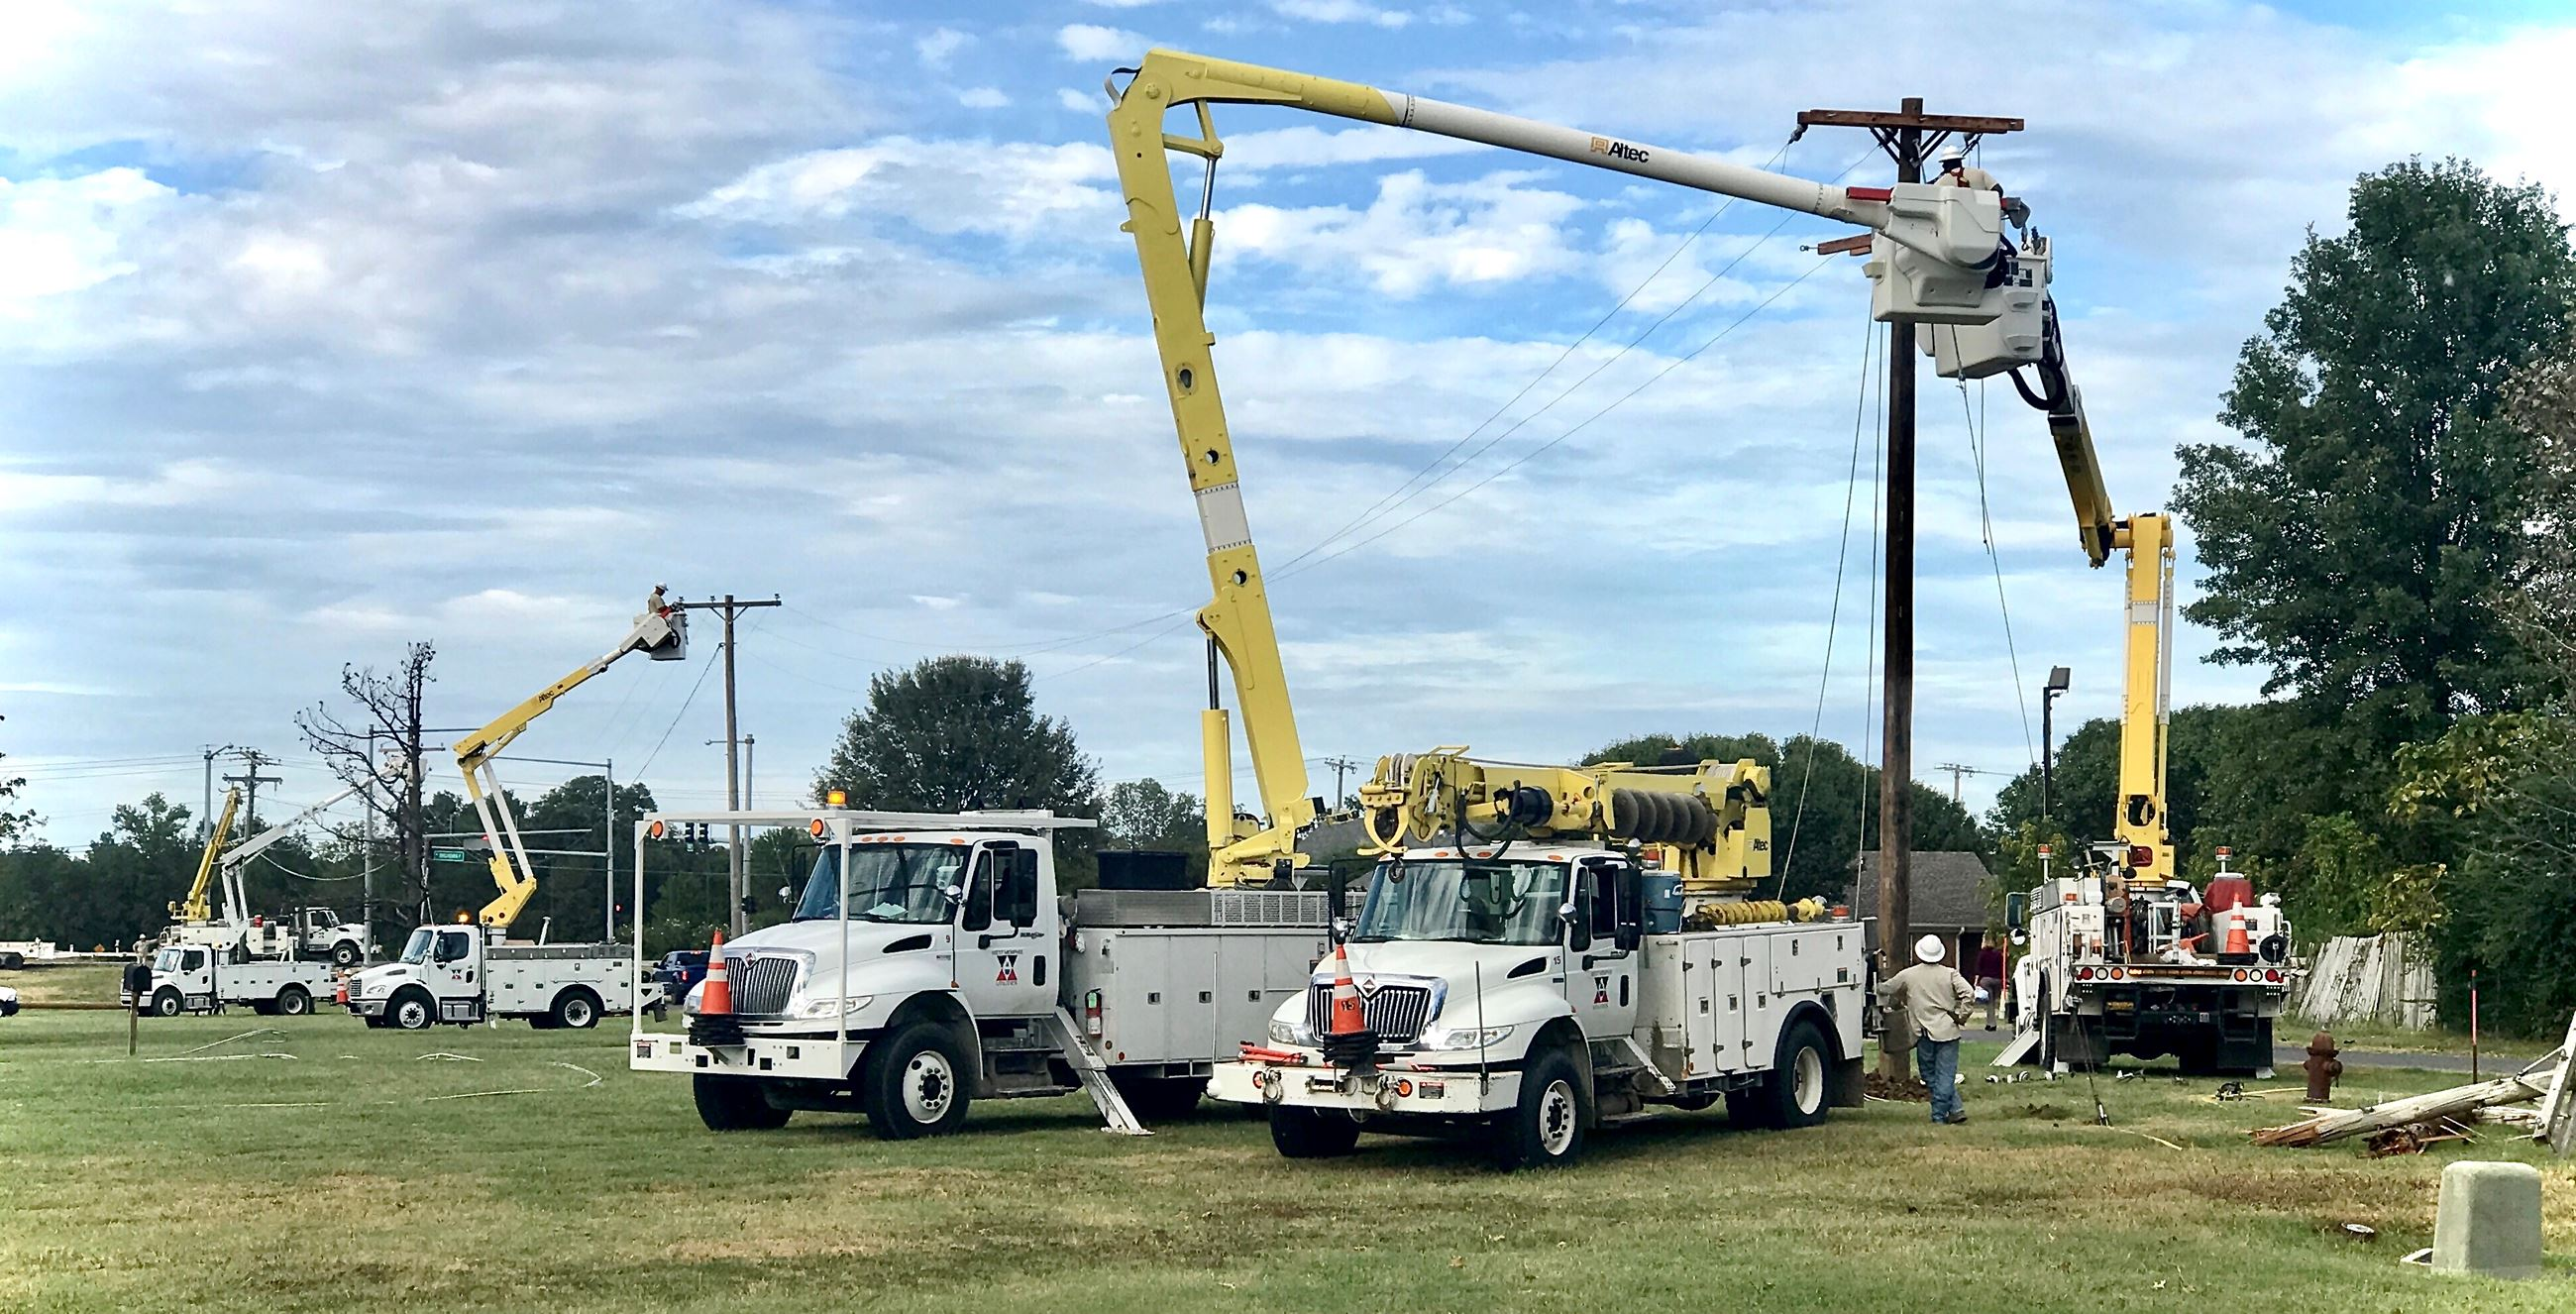 West Memphis Utilities working on lines